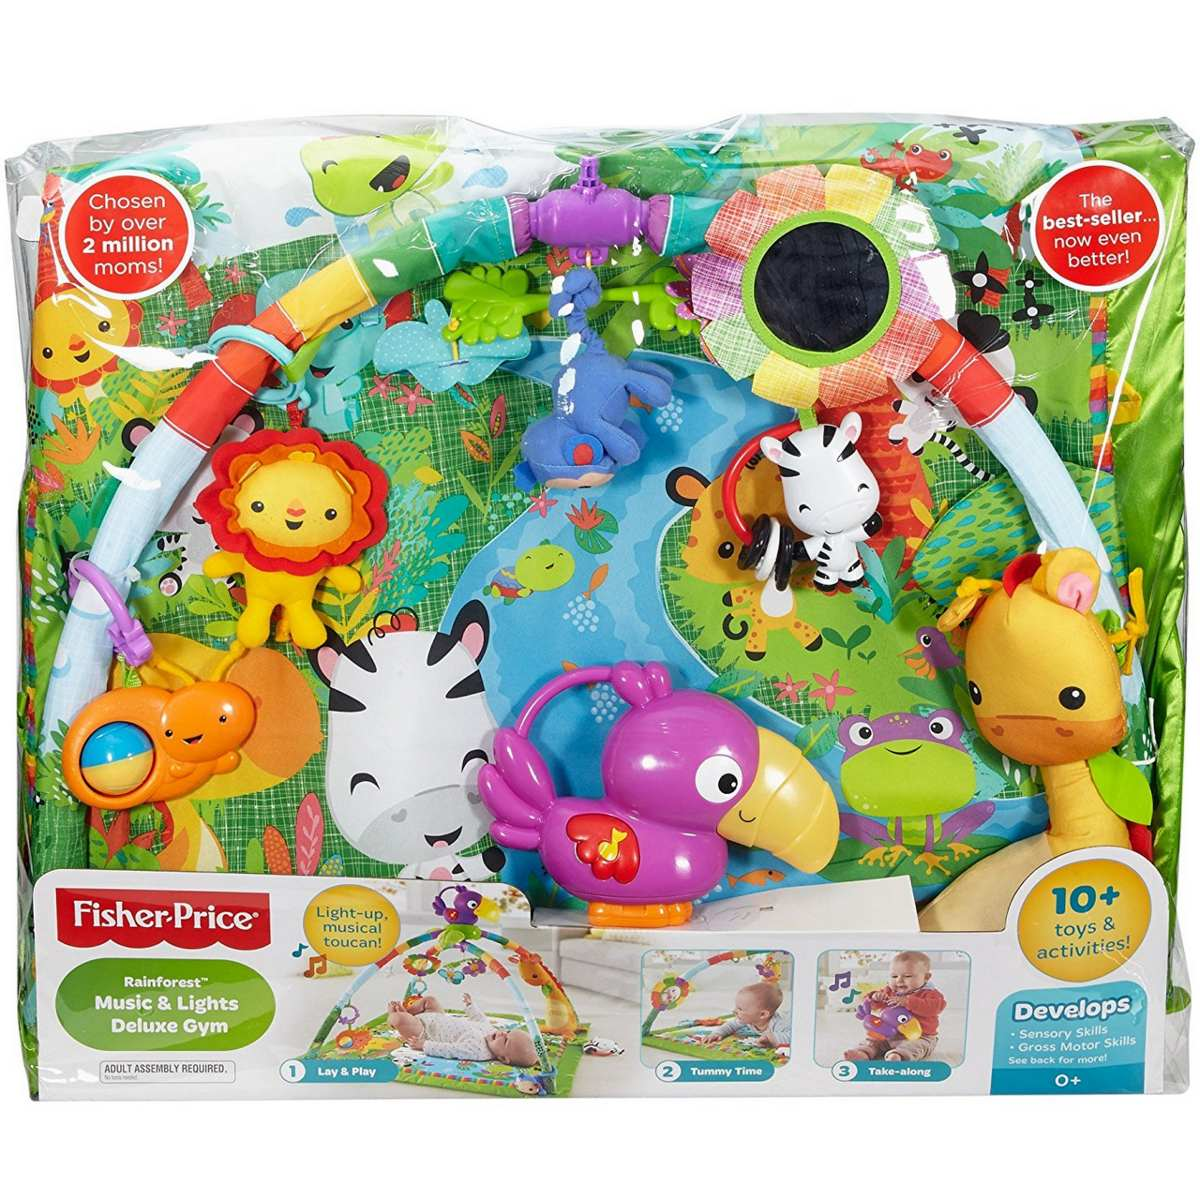 Tapete atividades bebe fisher price rainforest gym luxe - Tapis d eveil fisher price zoo deluxe ...